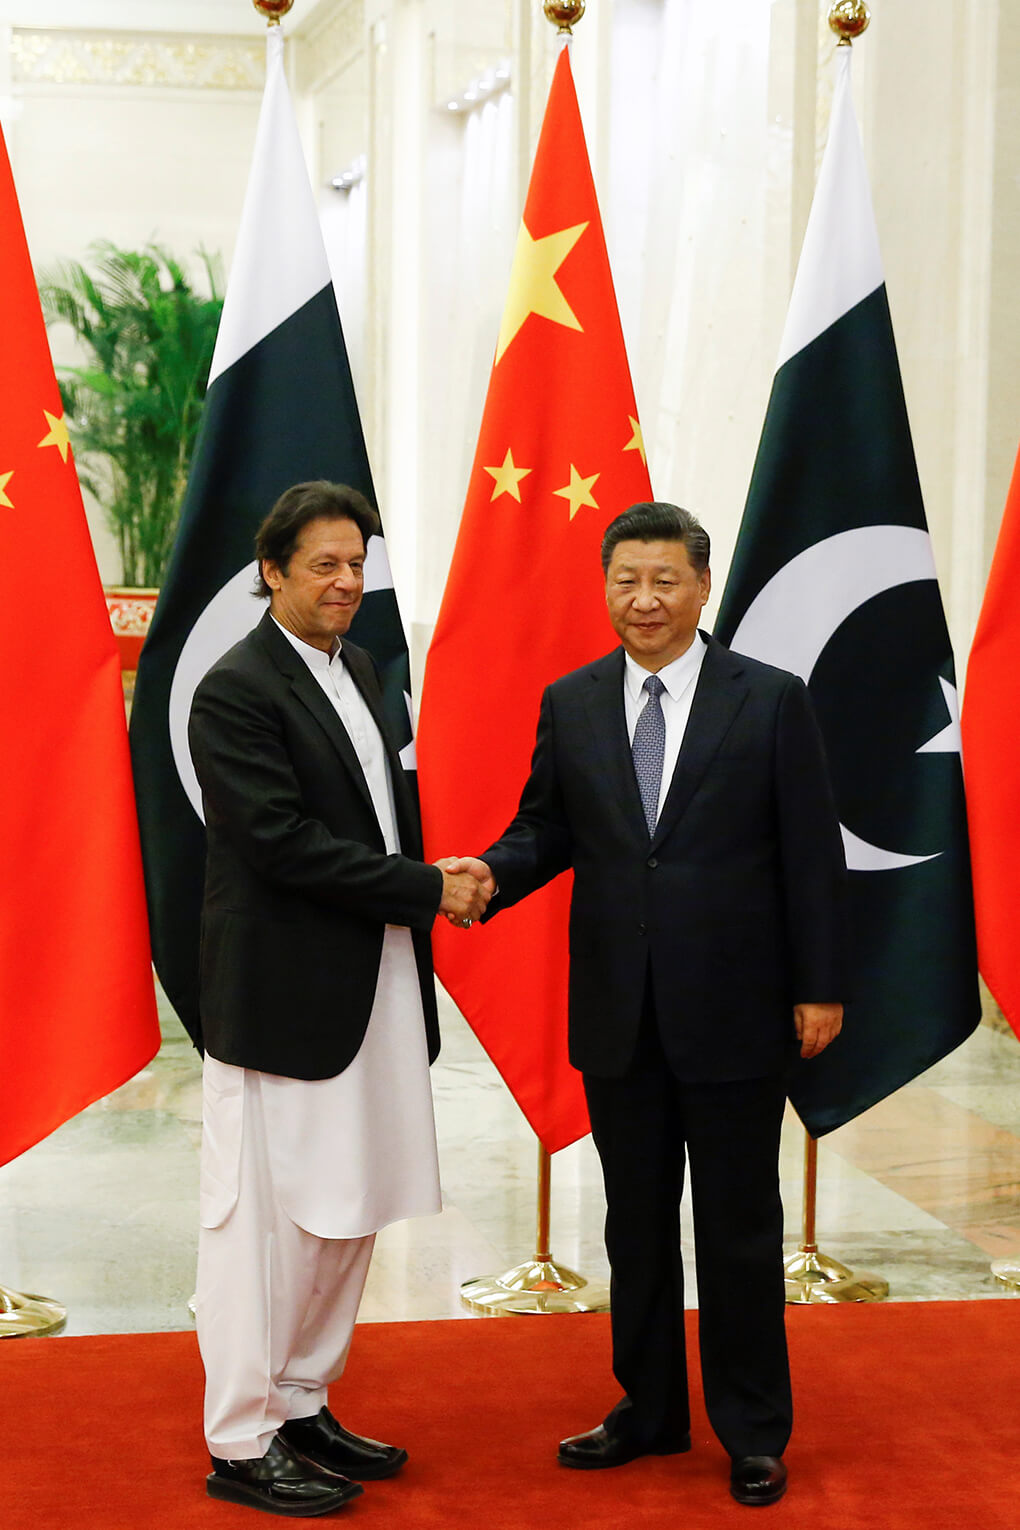 Chinese President Xi Jinping meets Pakistani Prime Minister Imran Khan in Beijing, in 2018. Pakistan has been a central part of the Digital Silk Road Initiative.